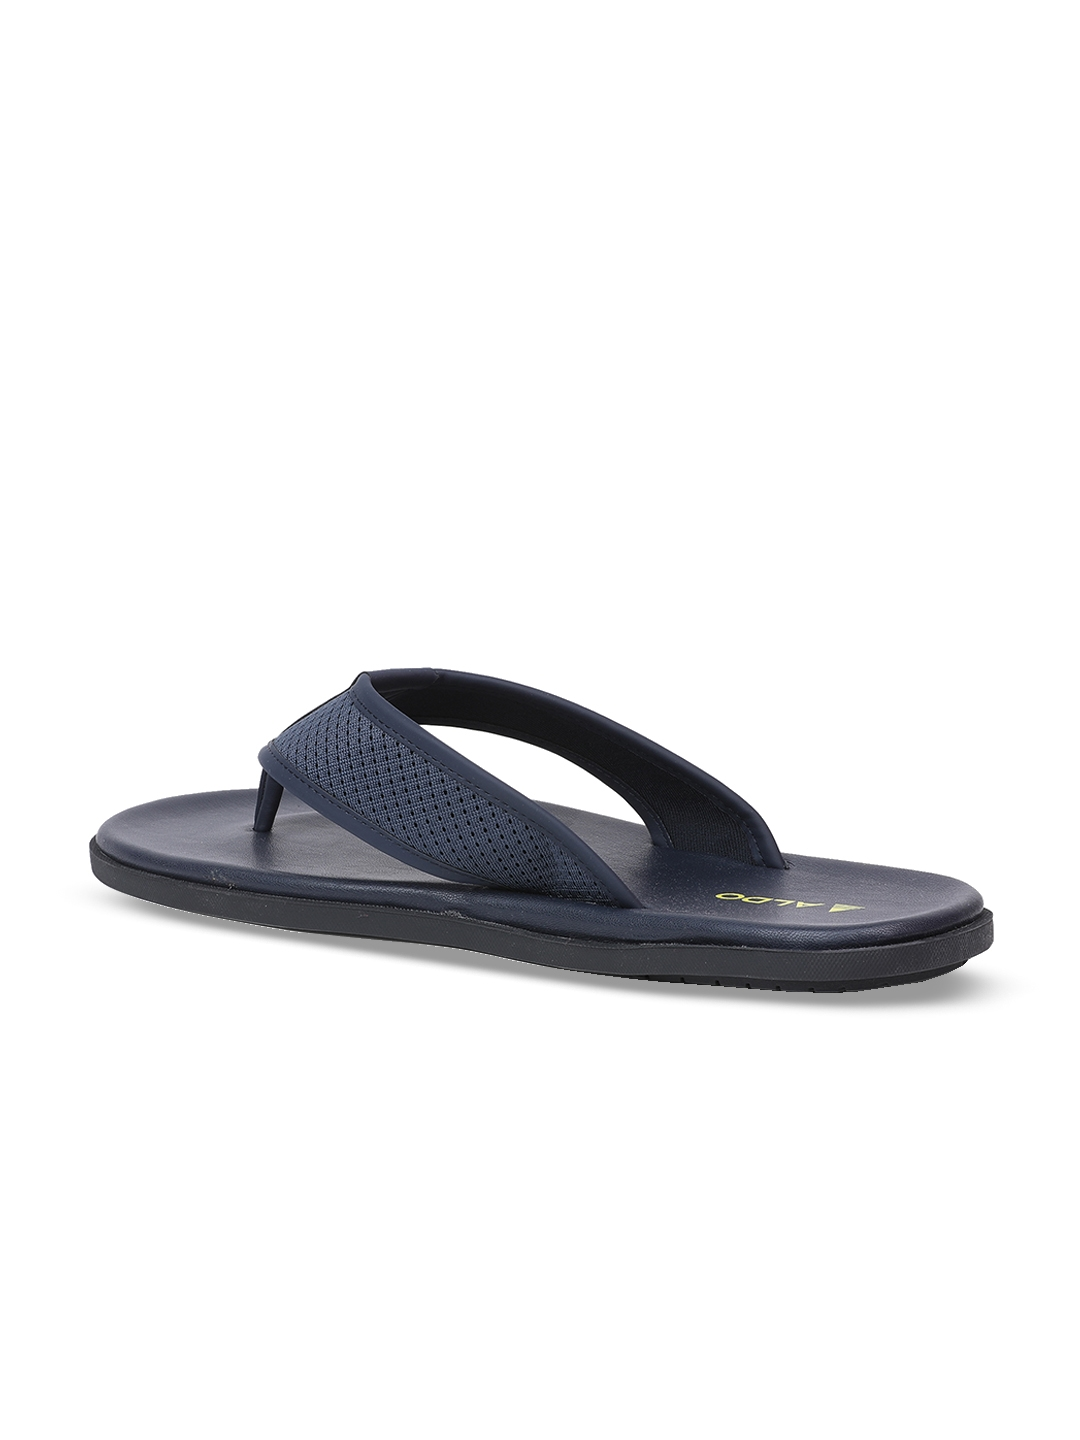 ecb432146a1 Buy ALDO Men Navy Blue Self Design Thong Flip Flops - Flip Flops for ...